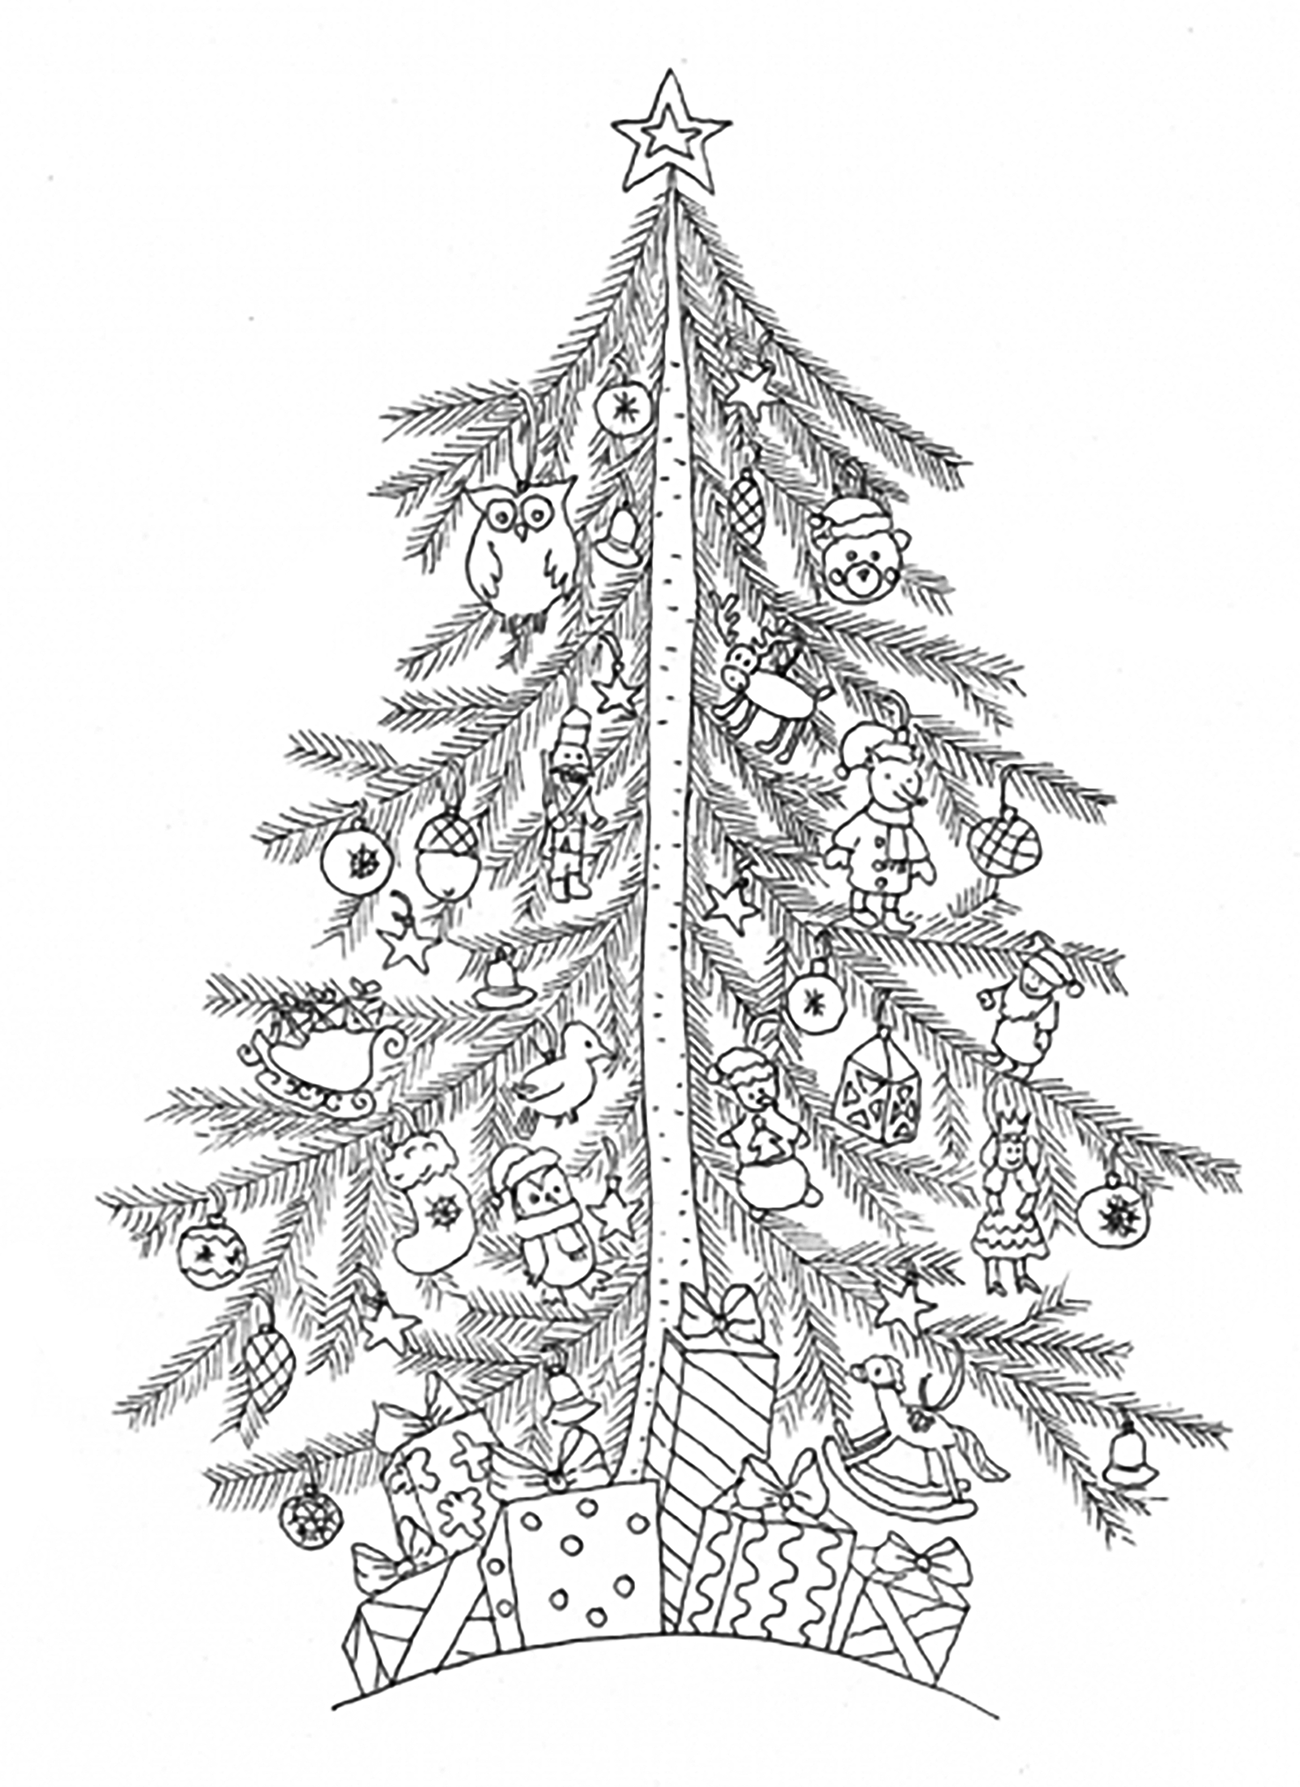 simple christmas tree from the gallery events christmas adult coloring pages printable coloring